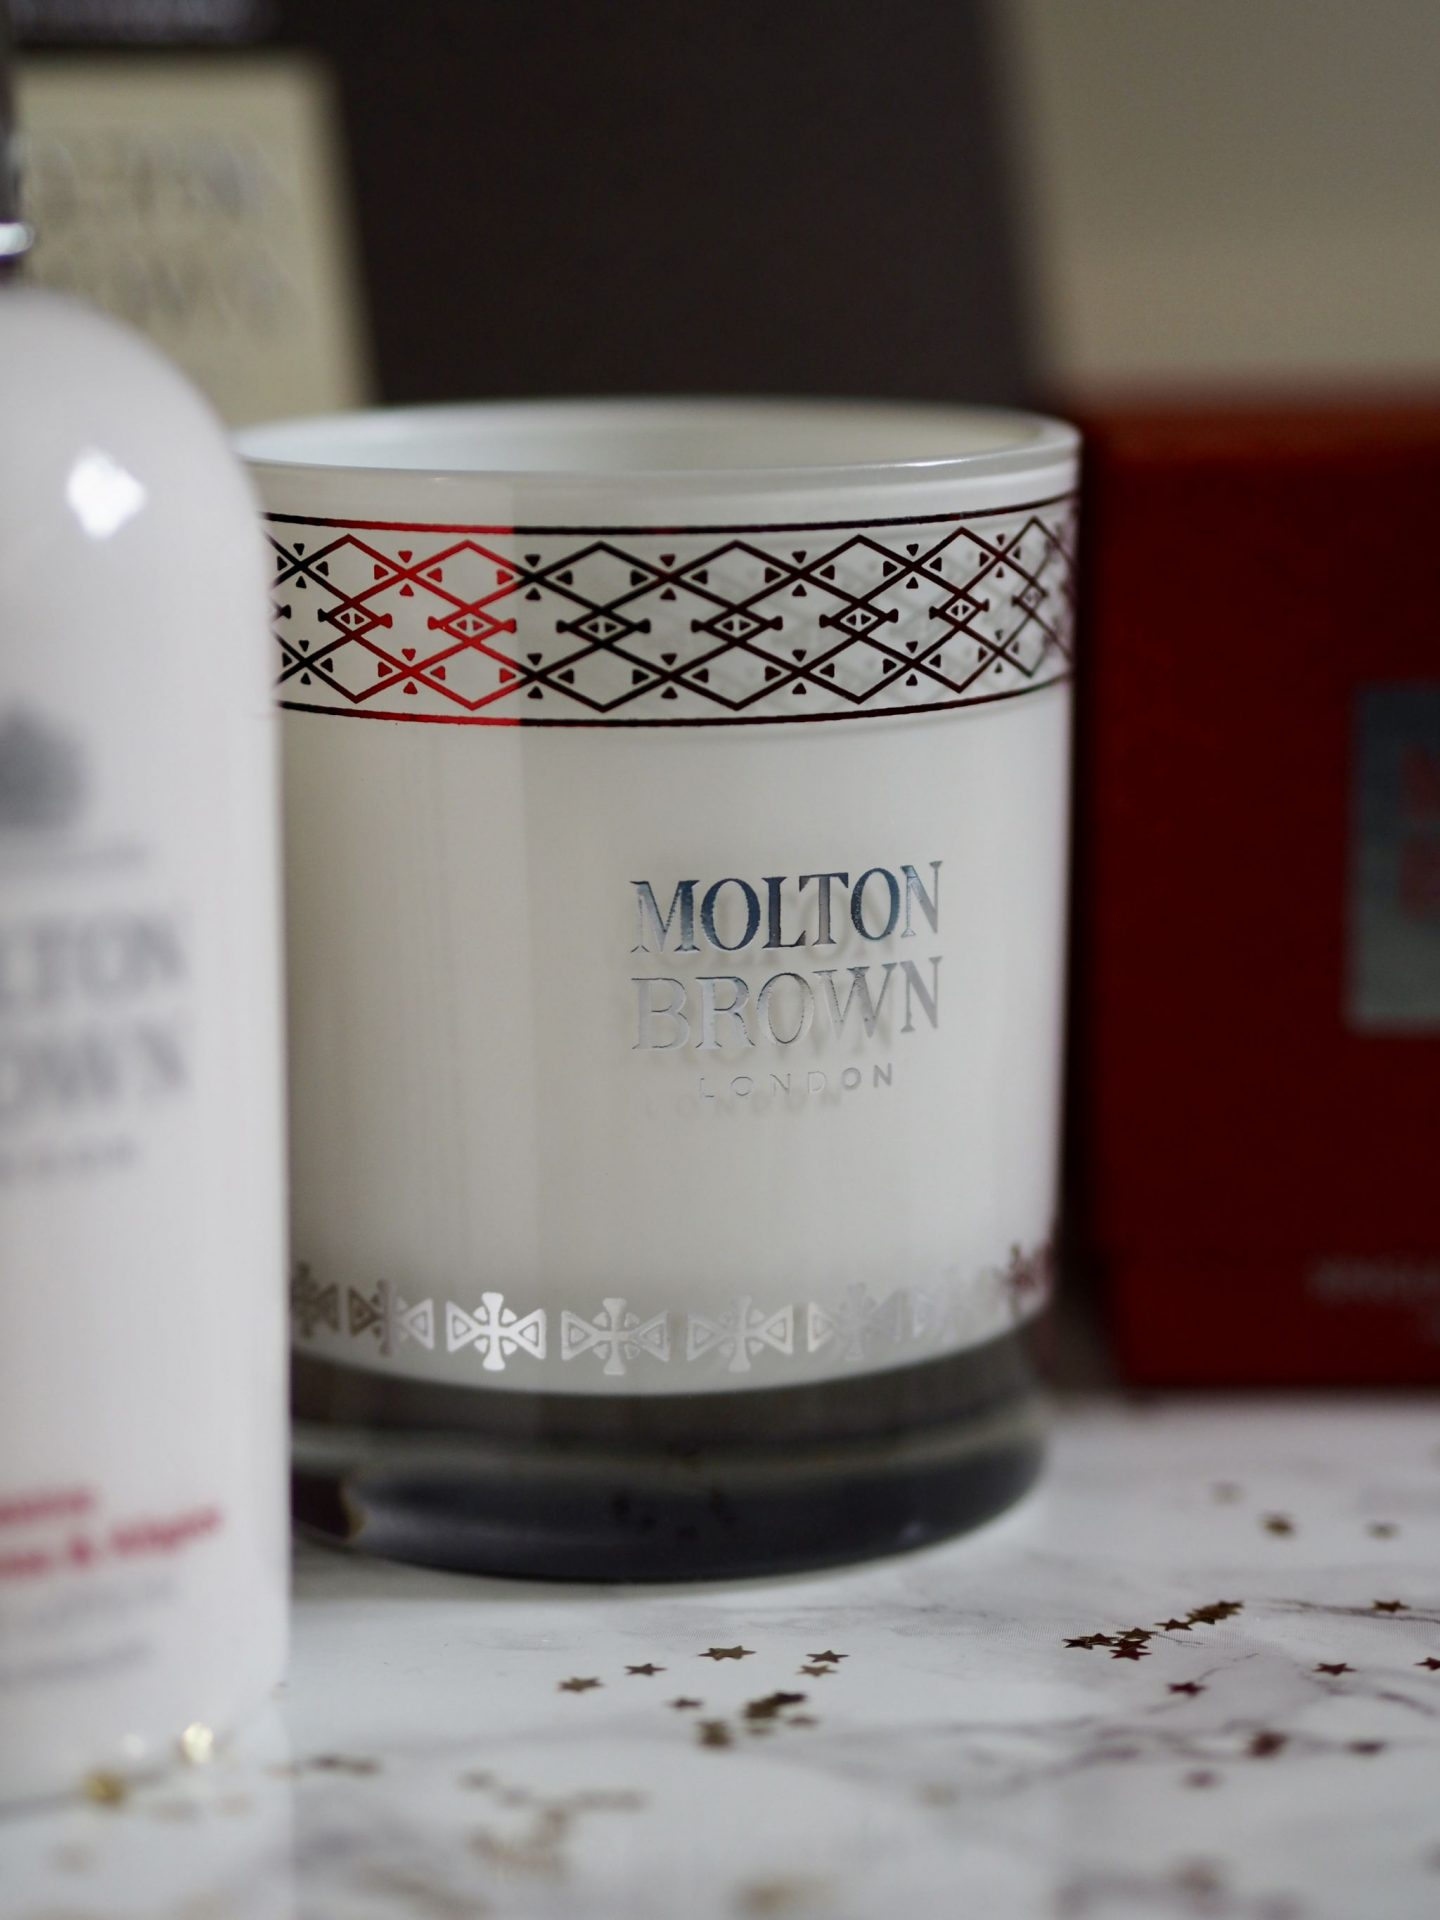 Laura Byrnes, Lauras little locket, gift guide, molton brown